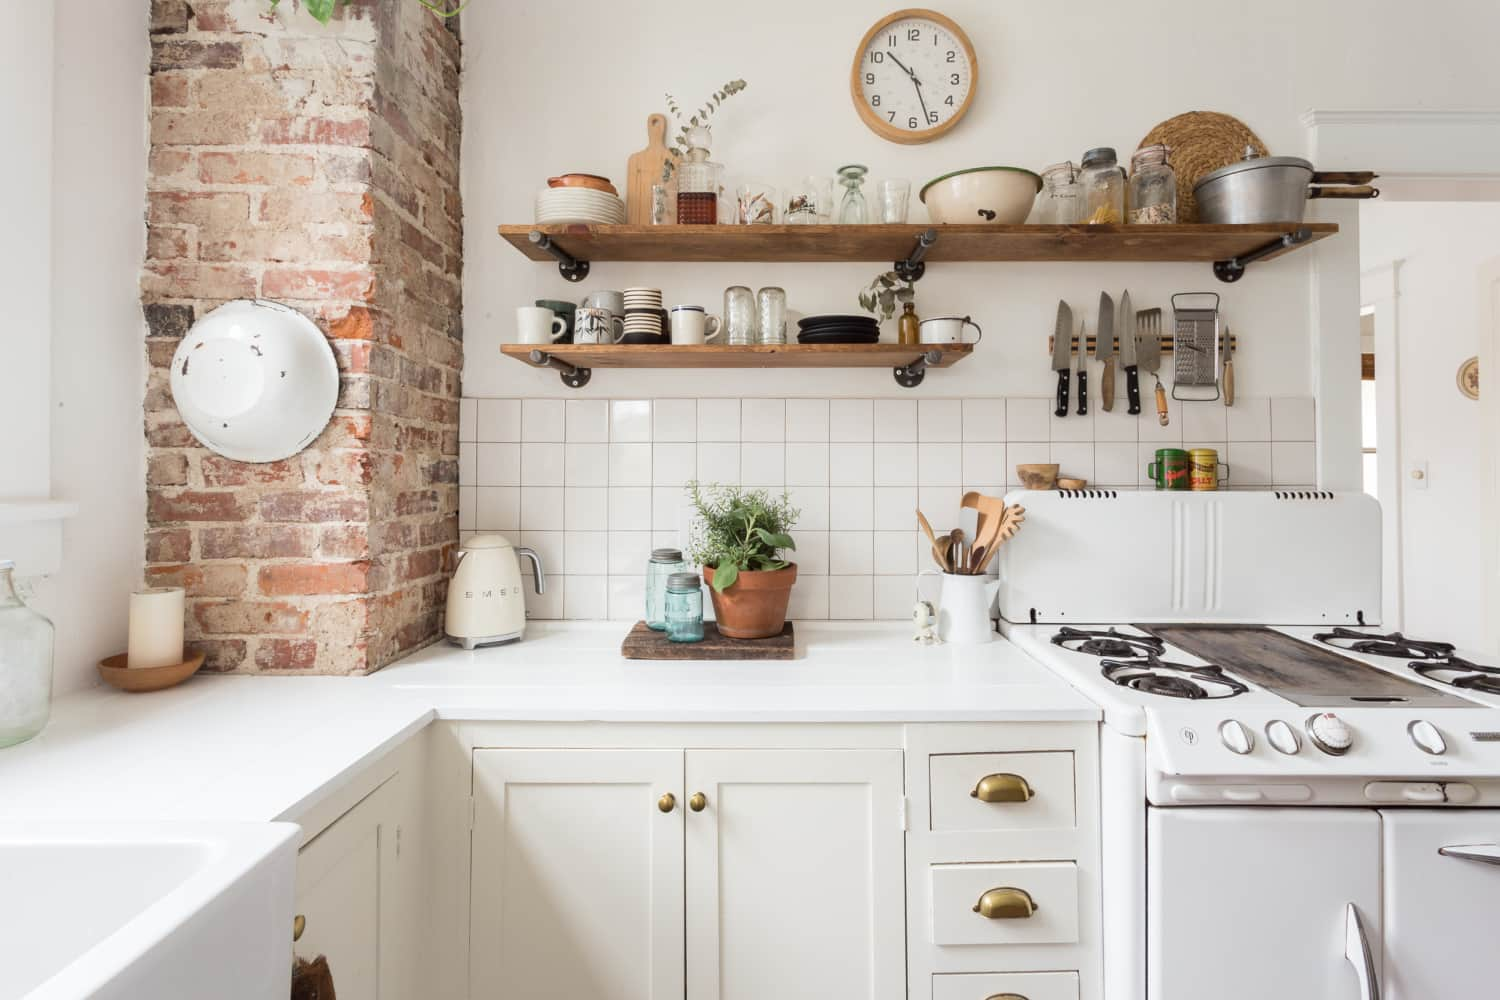 Classic Kitchen Accessories That Will Look Good in Any Home